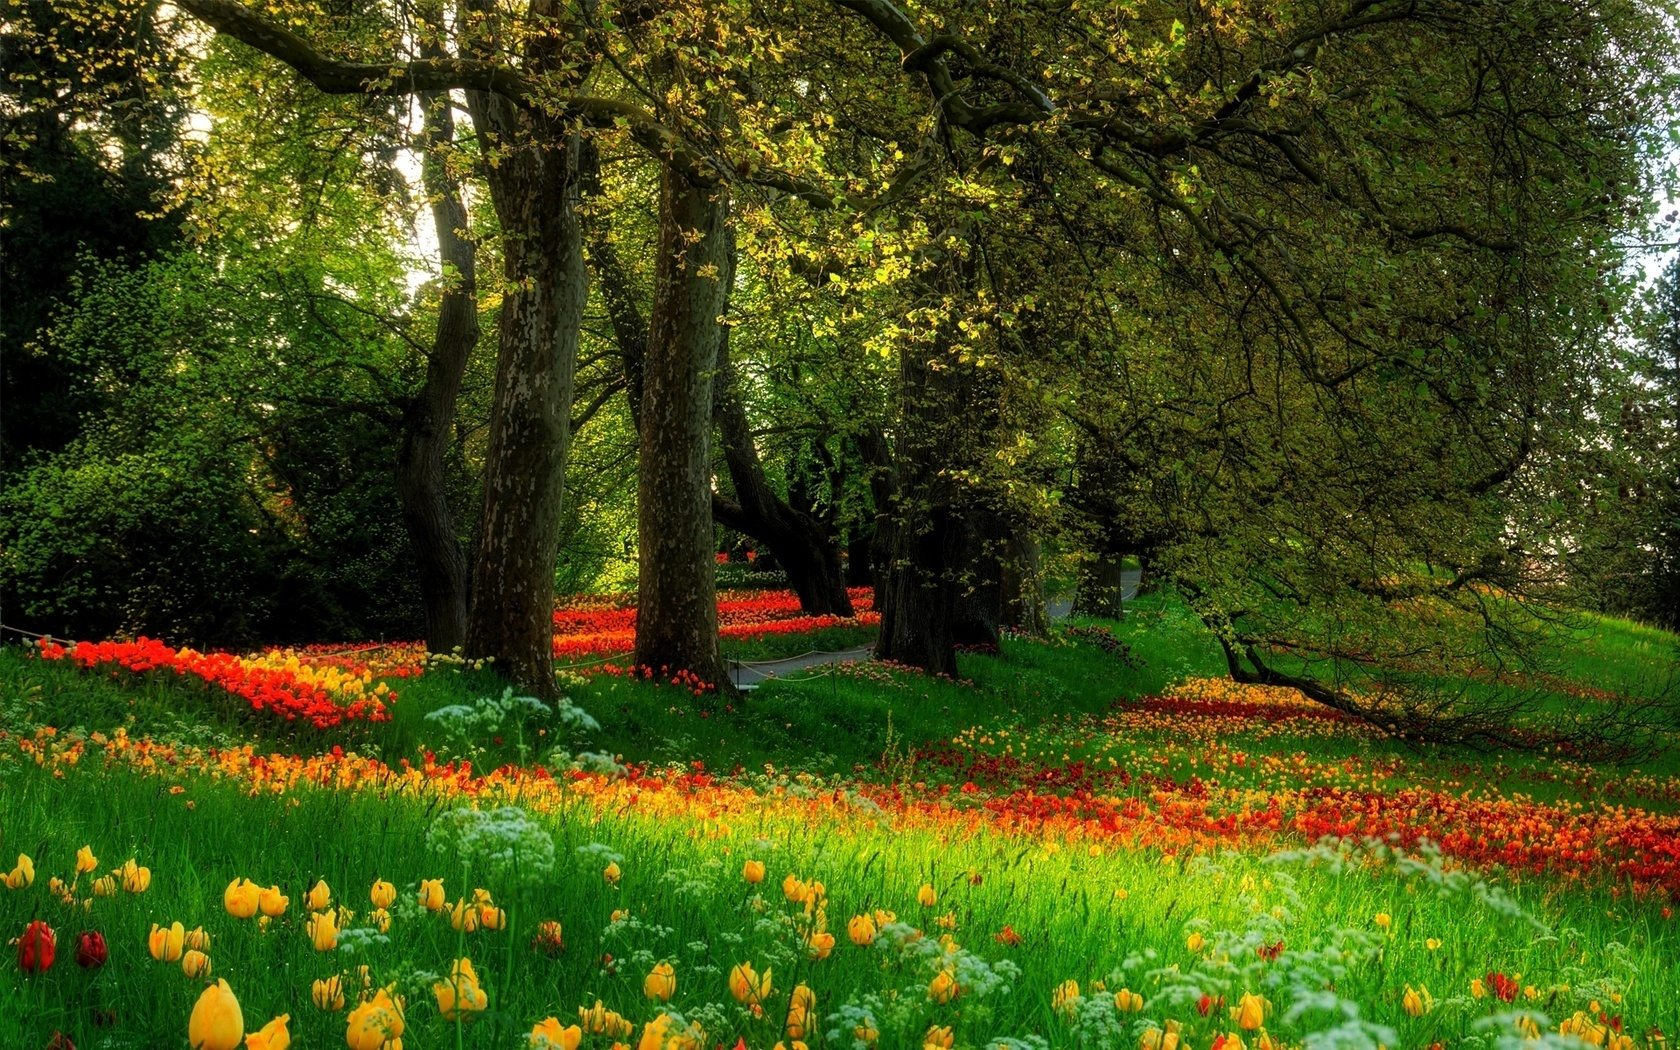 Garden Scenery Wallpapers